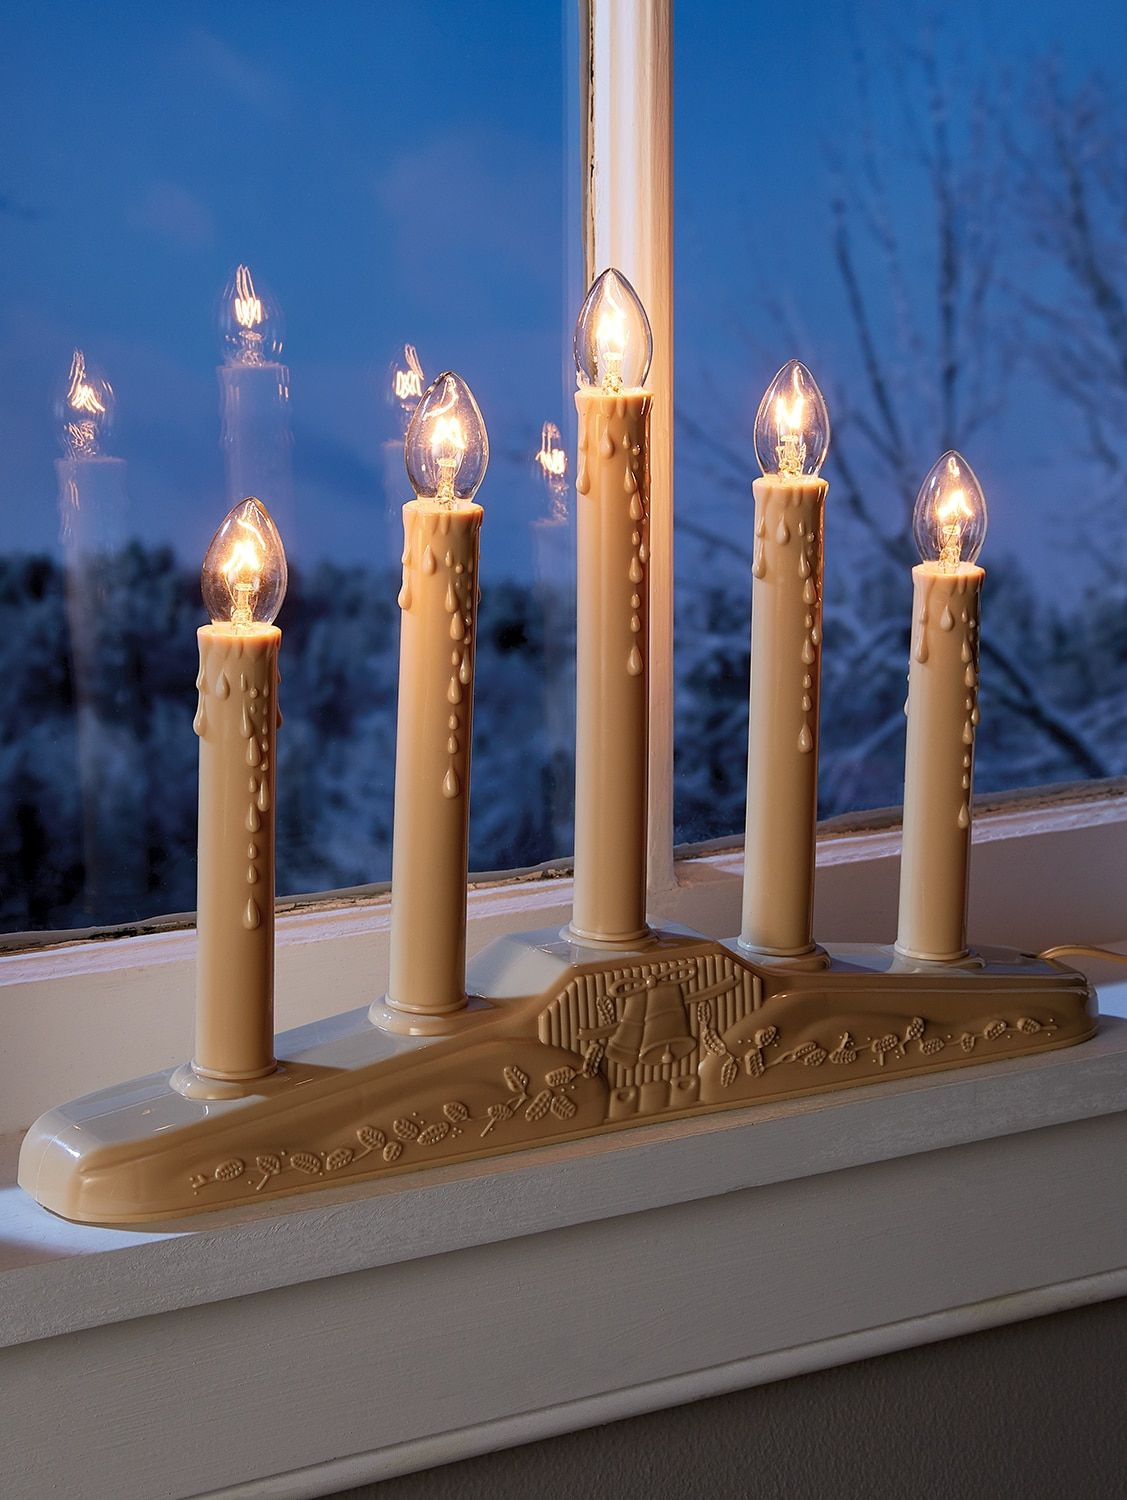 Electric Window Candle In 3 Sizes Window Candles Electric Window Candles Christmas Candle Lights